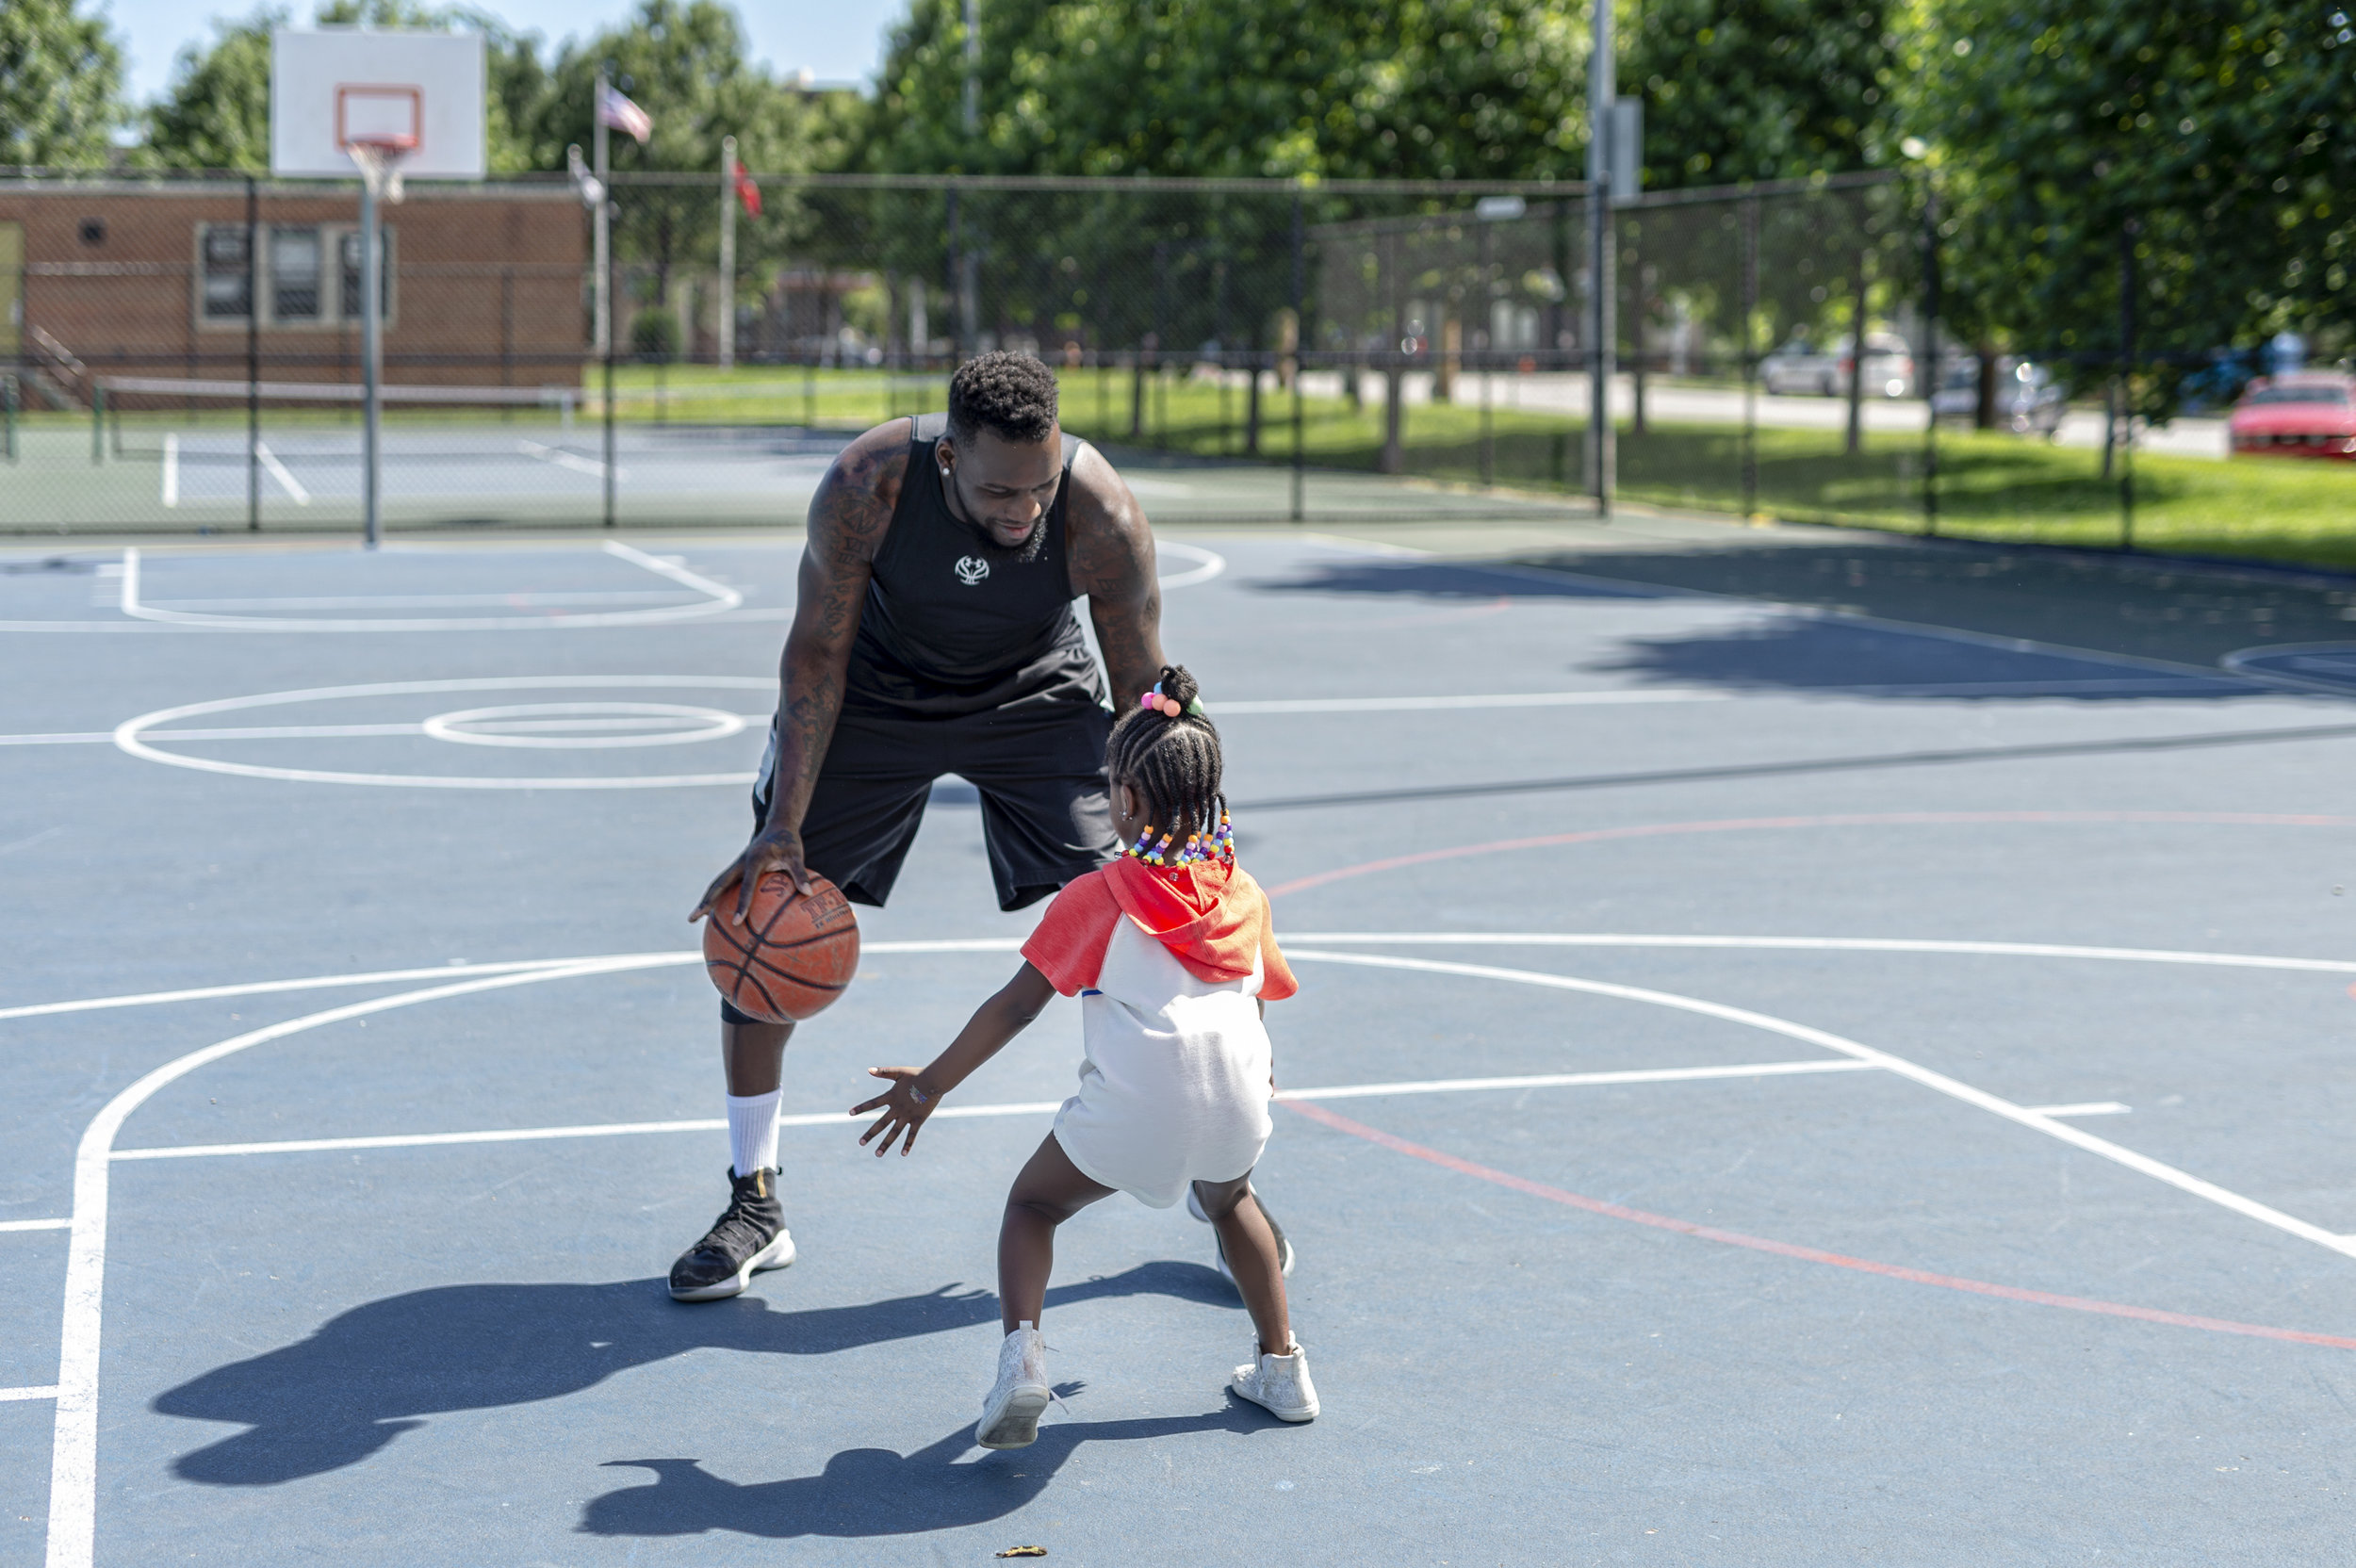 FATHER-DAUGHTER-BASKETBALL-THEMBOLDENS-FAMILY.jpg